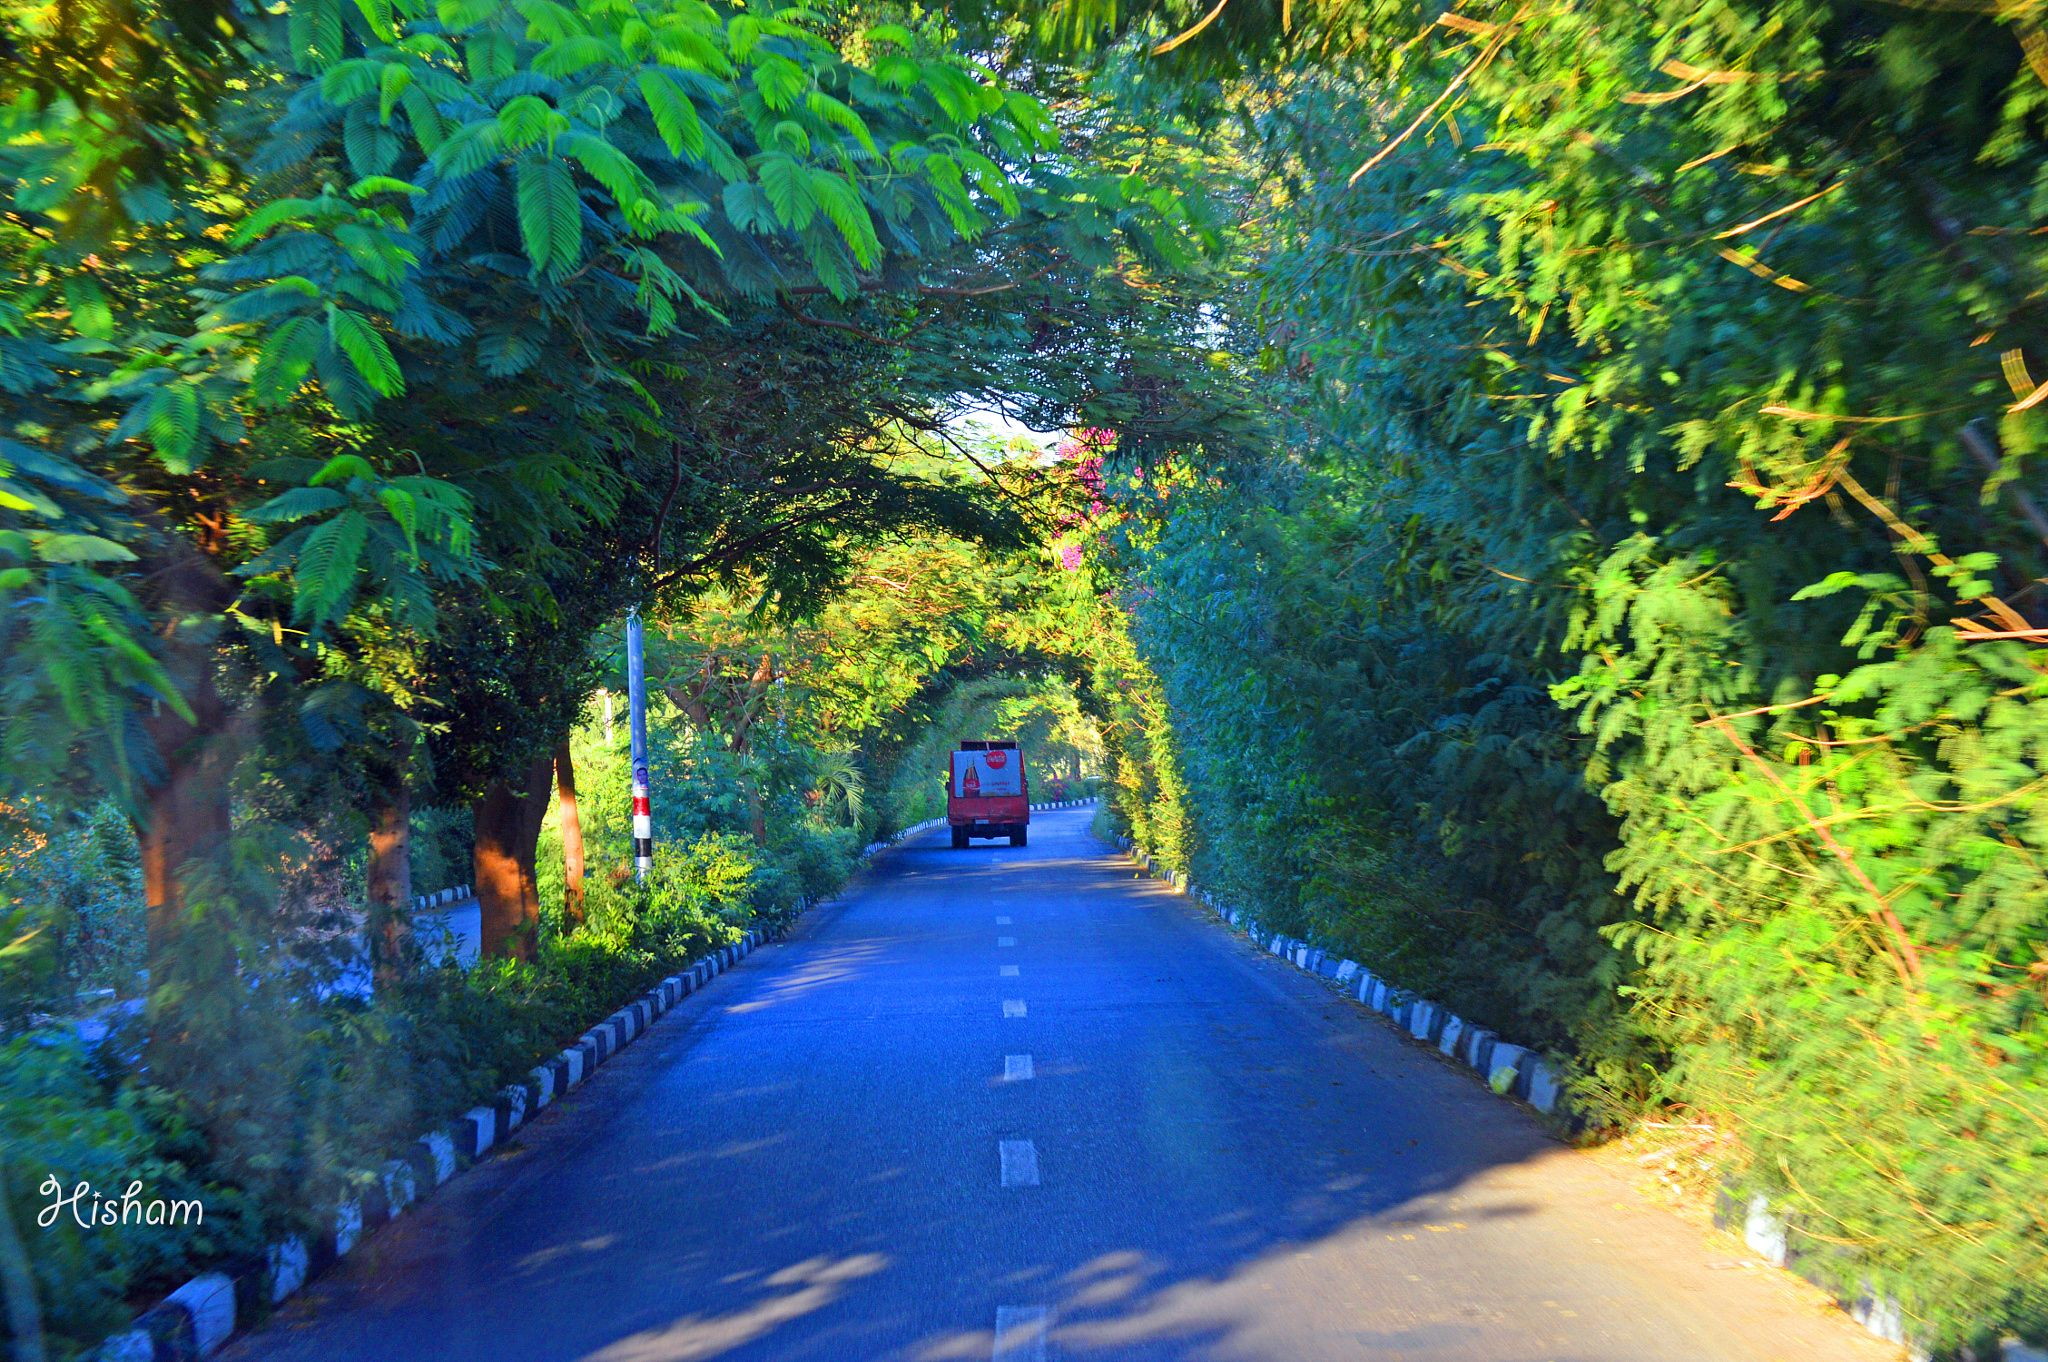 On the road. - Luxor City, Road, Trees, Green color, Light, Car ...